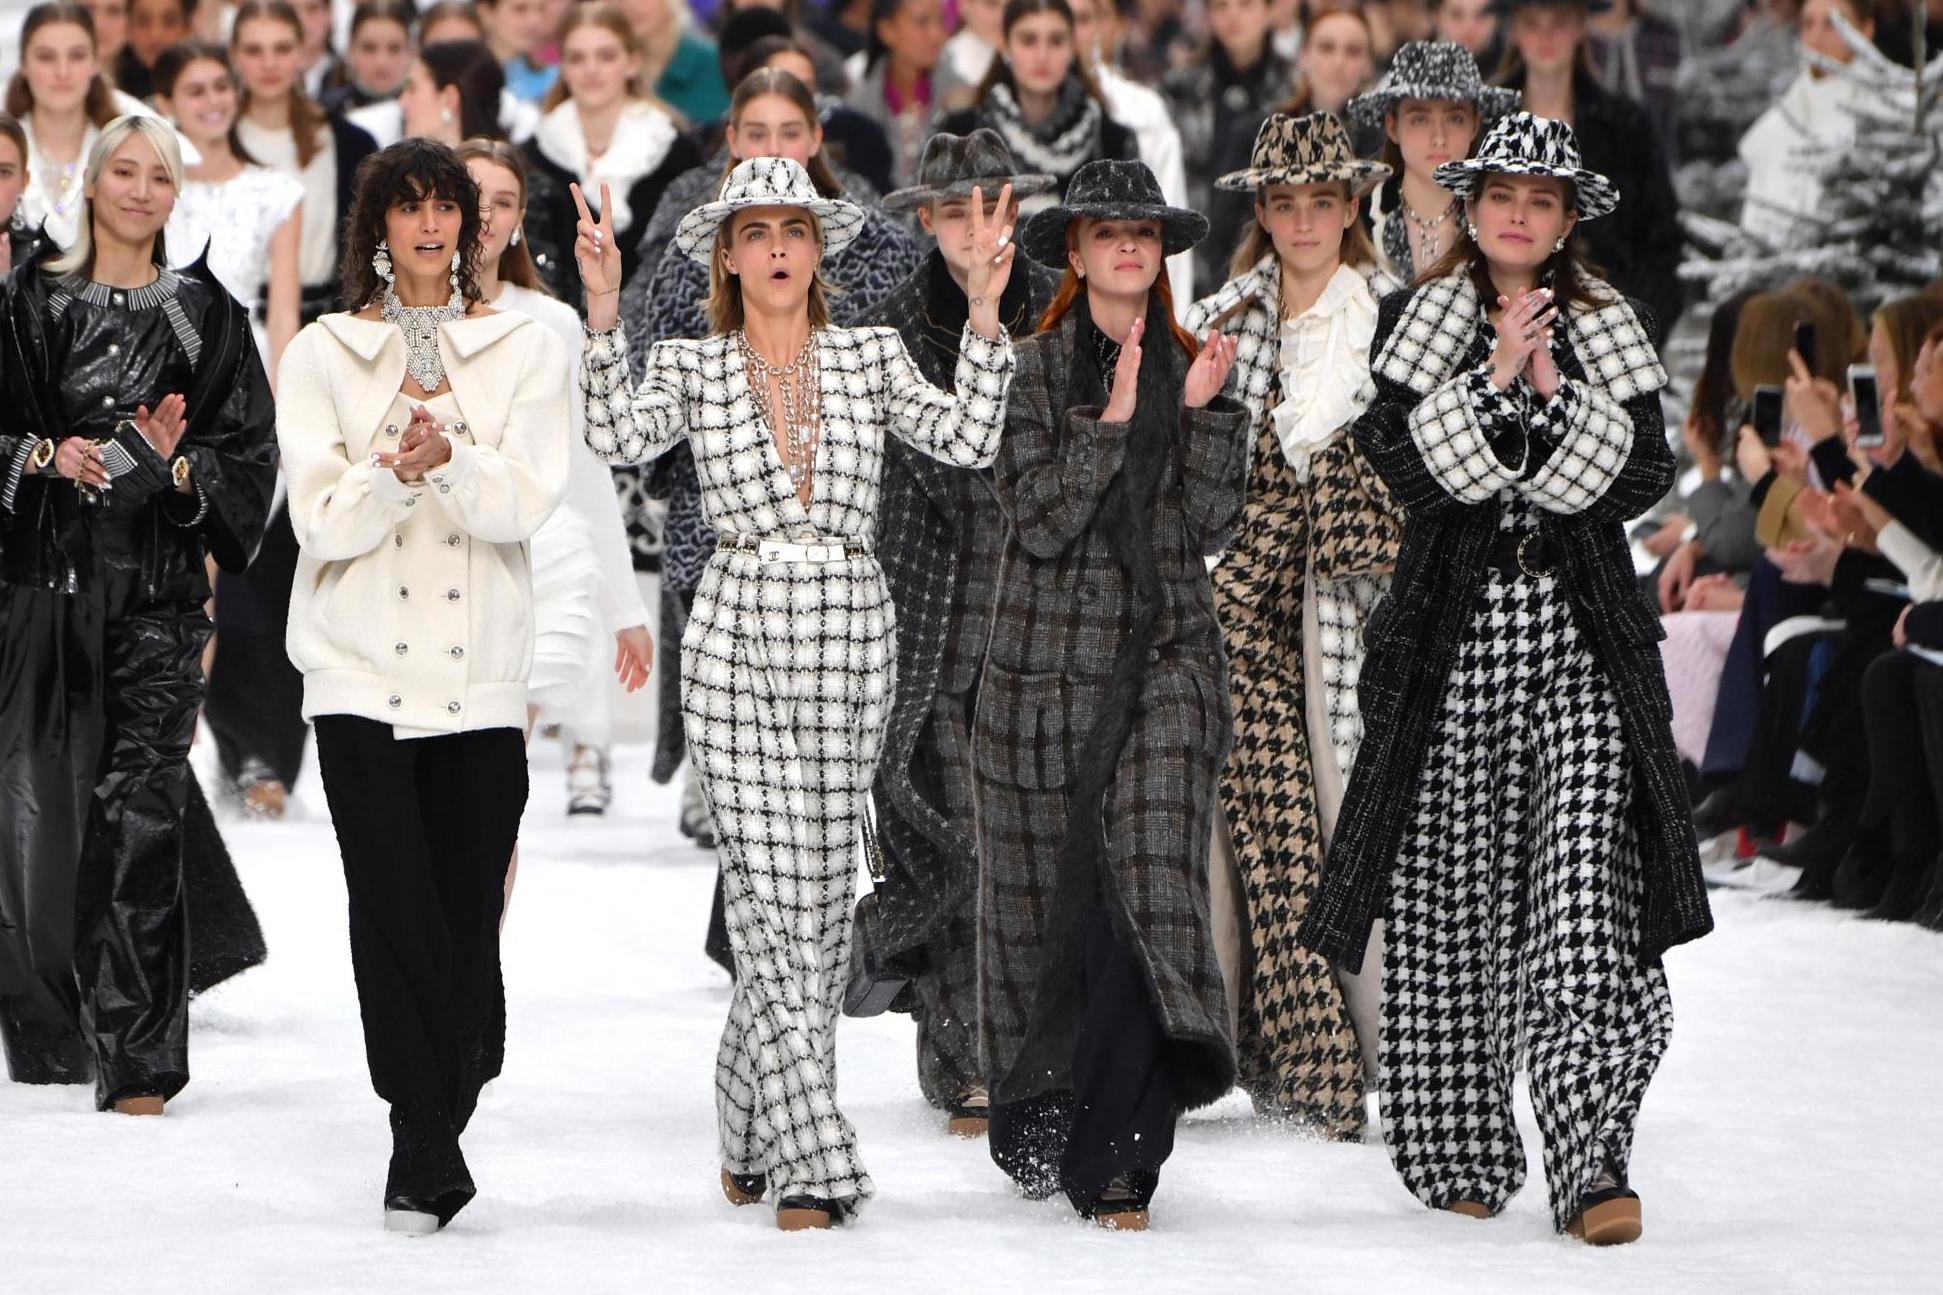 Paris Fashion Week 2019 Latest News Breaking Stories And Comment